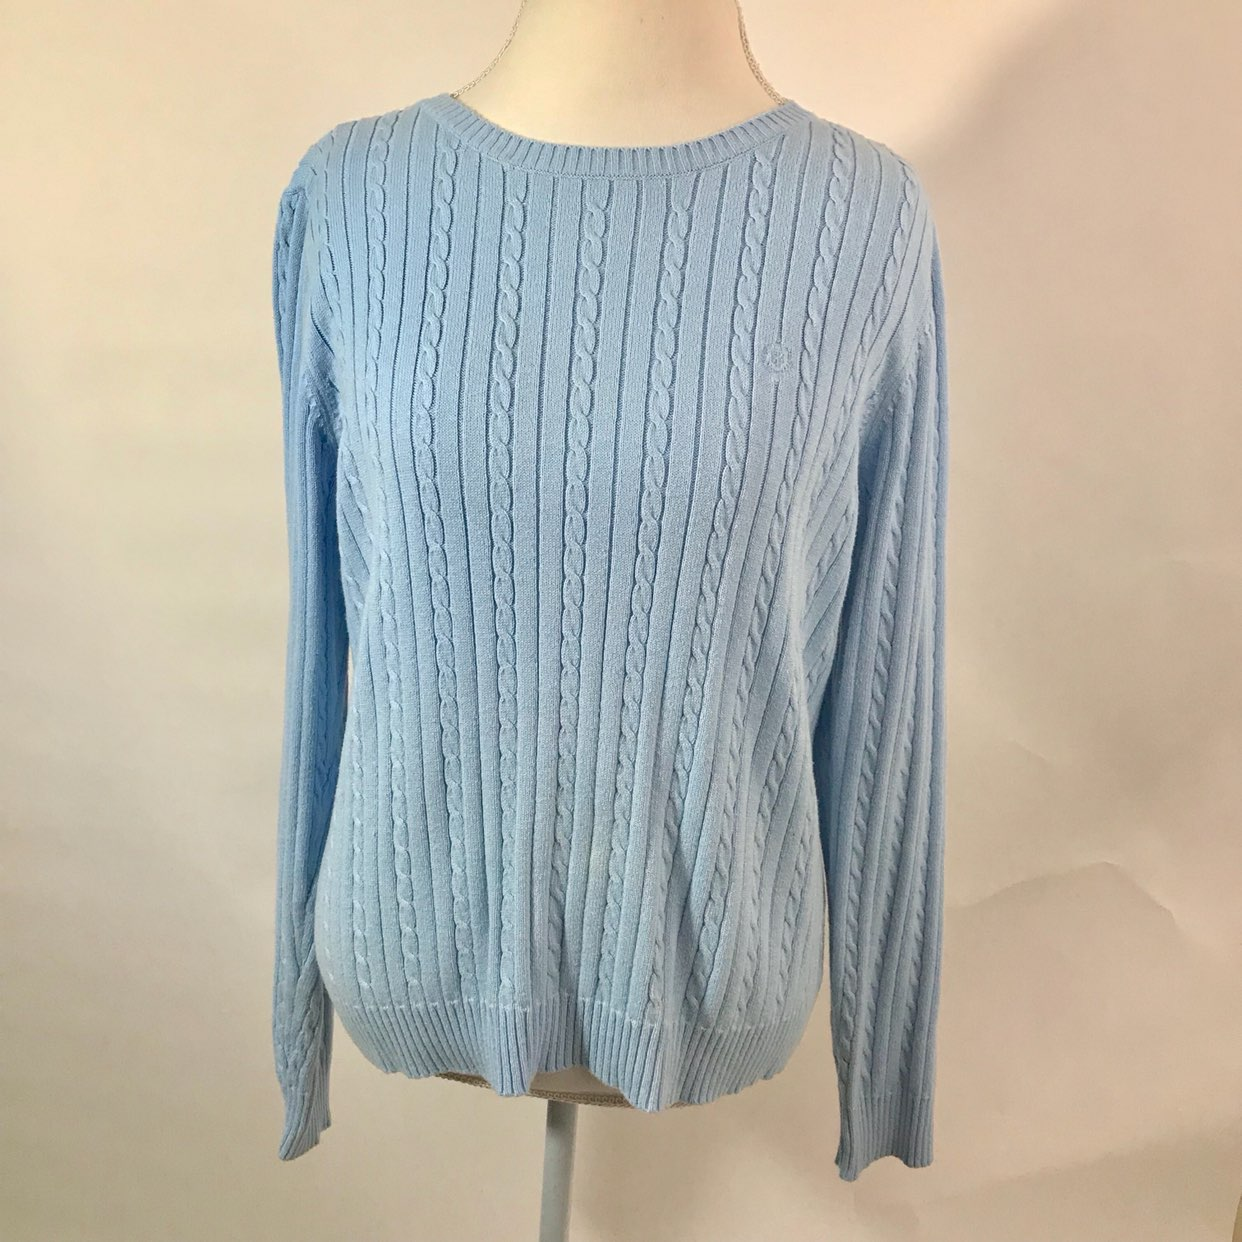 Izod Baby Blue Cable Knit Sweater XL - Mercari: BUY & SELL THINGS ...